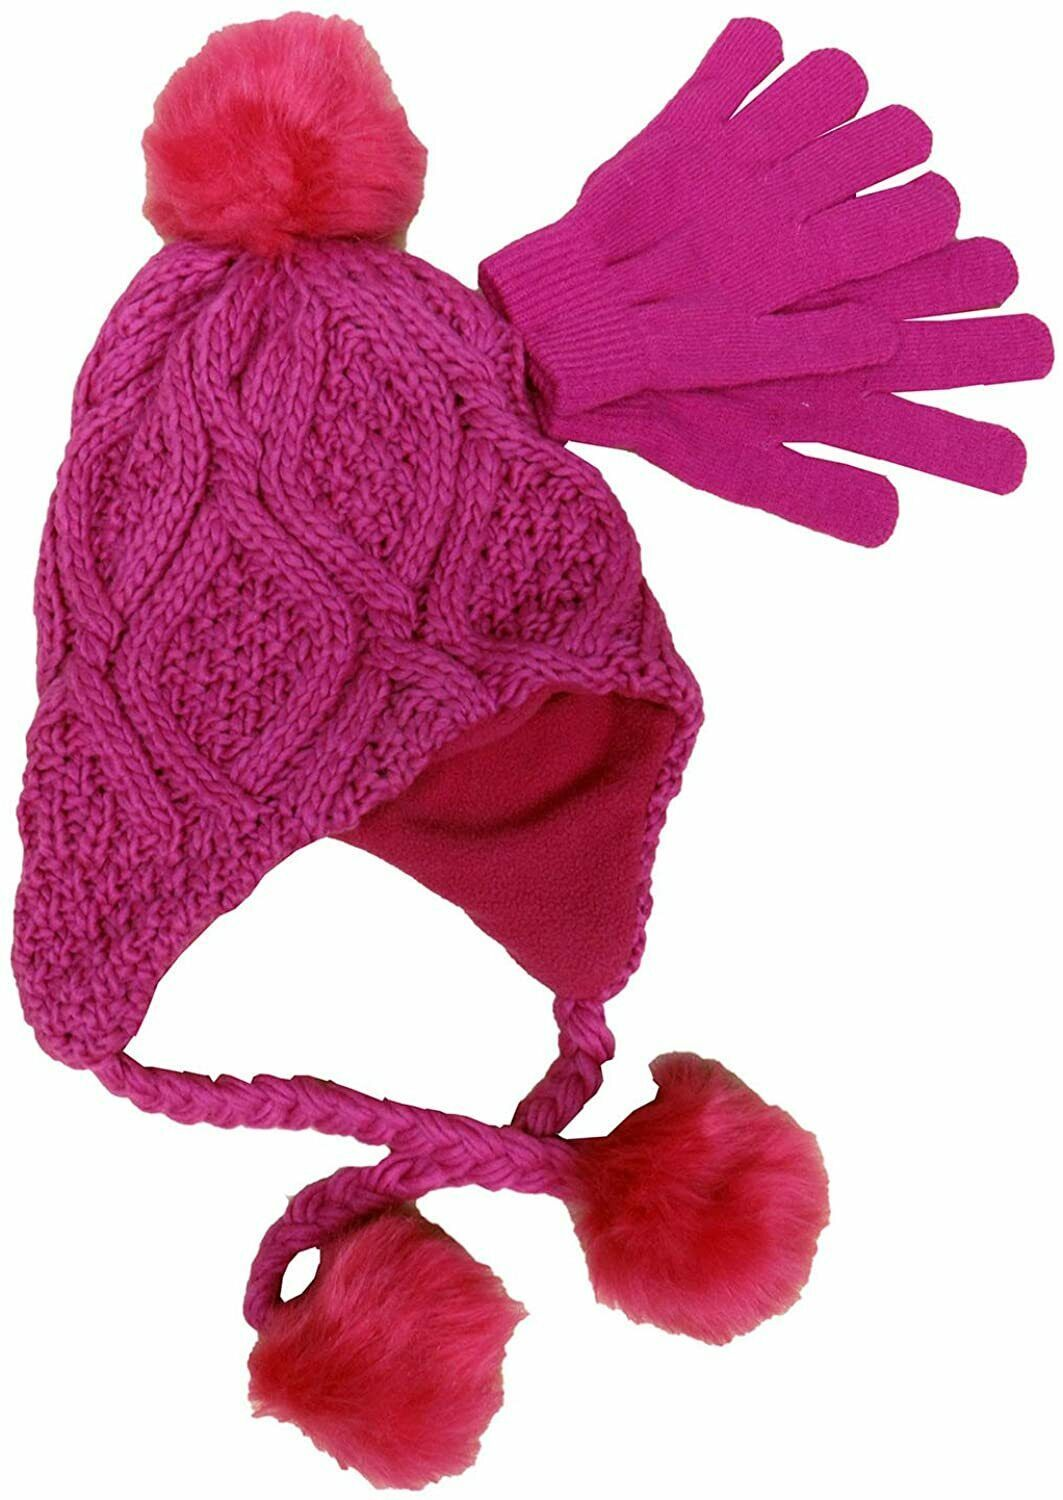 Primary image for Designer MACY'S Berkshire Girls' 2-Pc Knitted Hat Scarf Gloves Set Pink